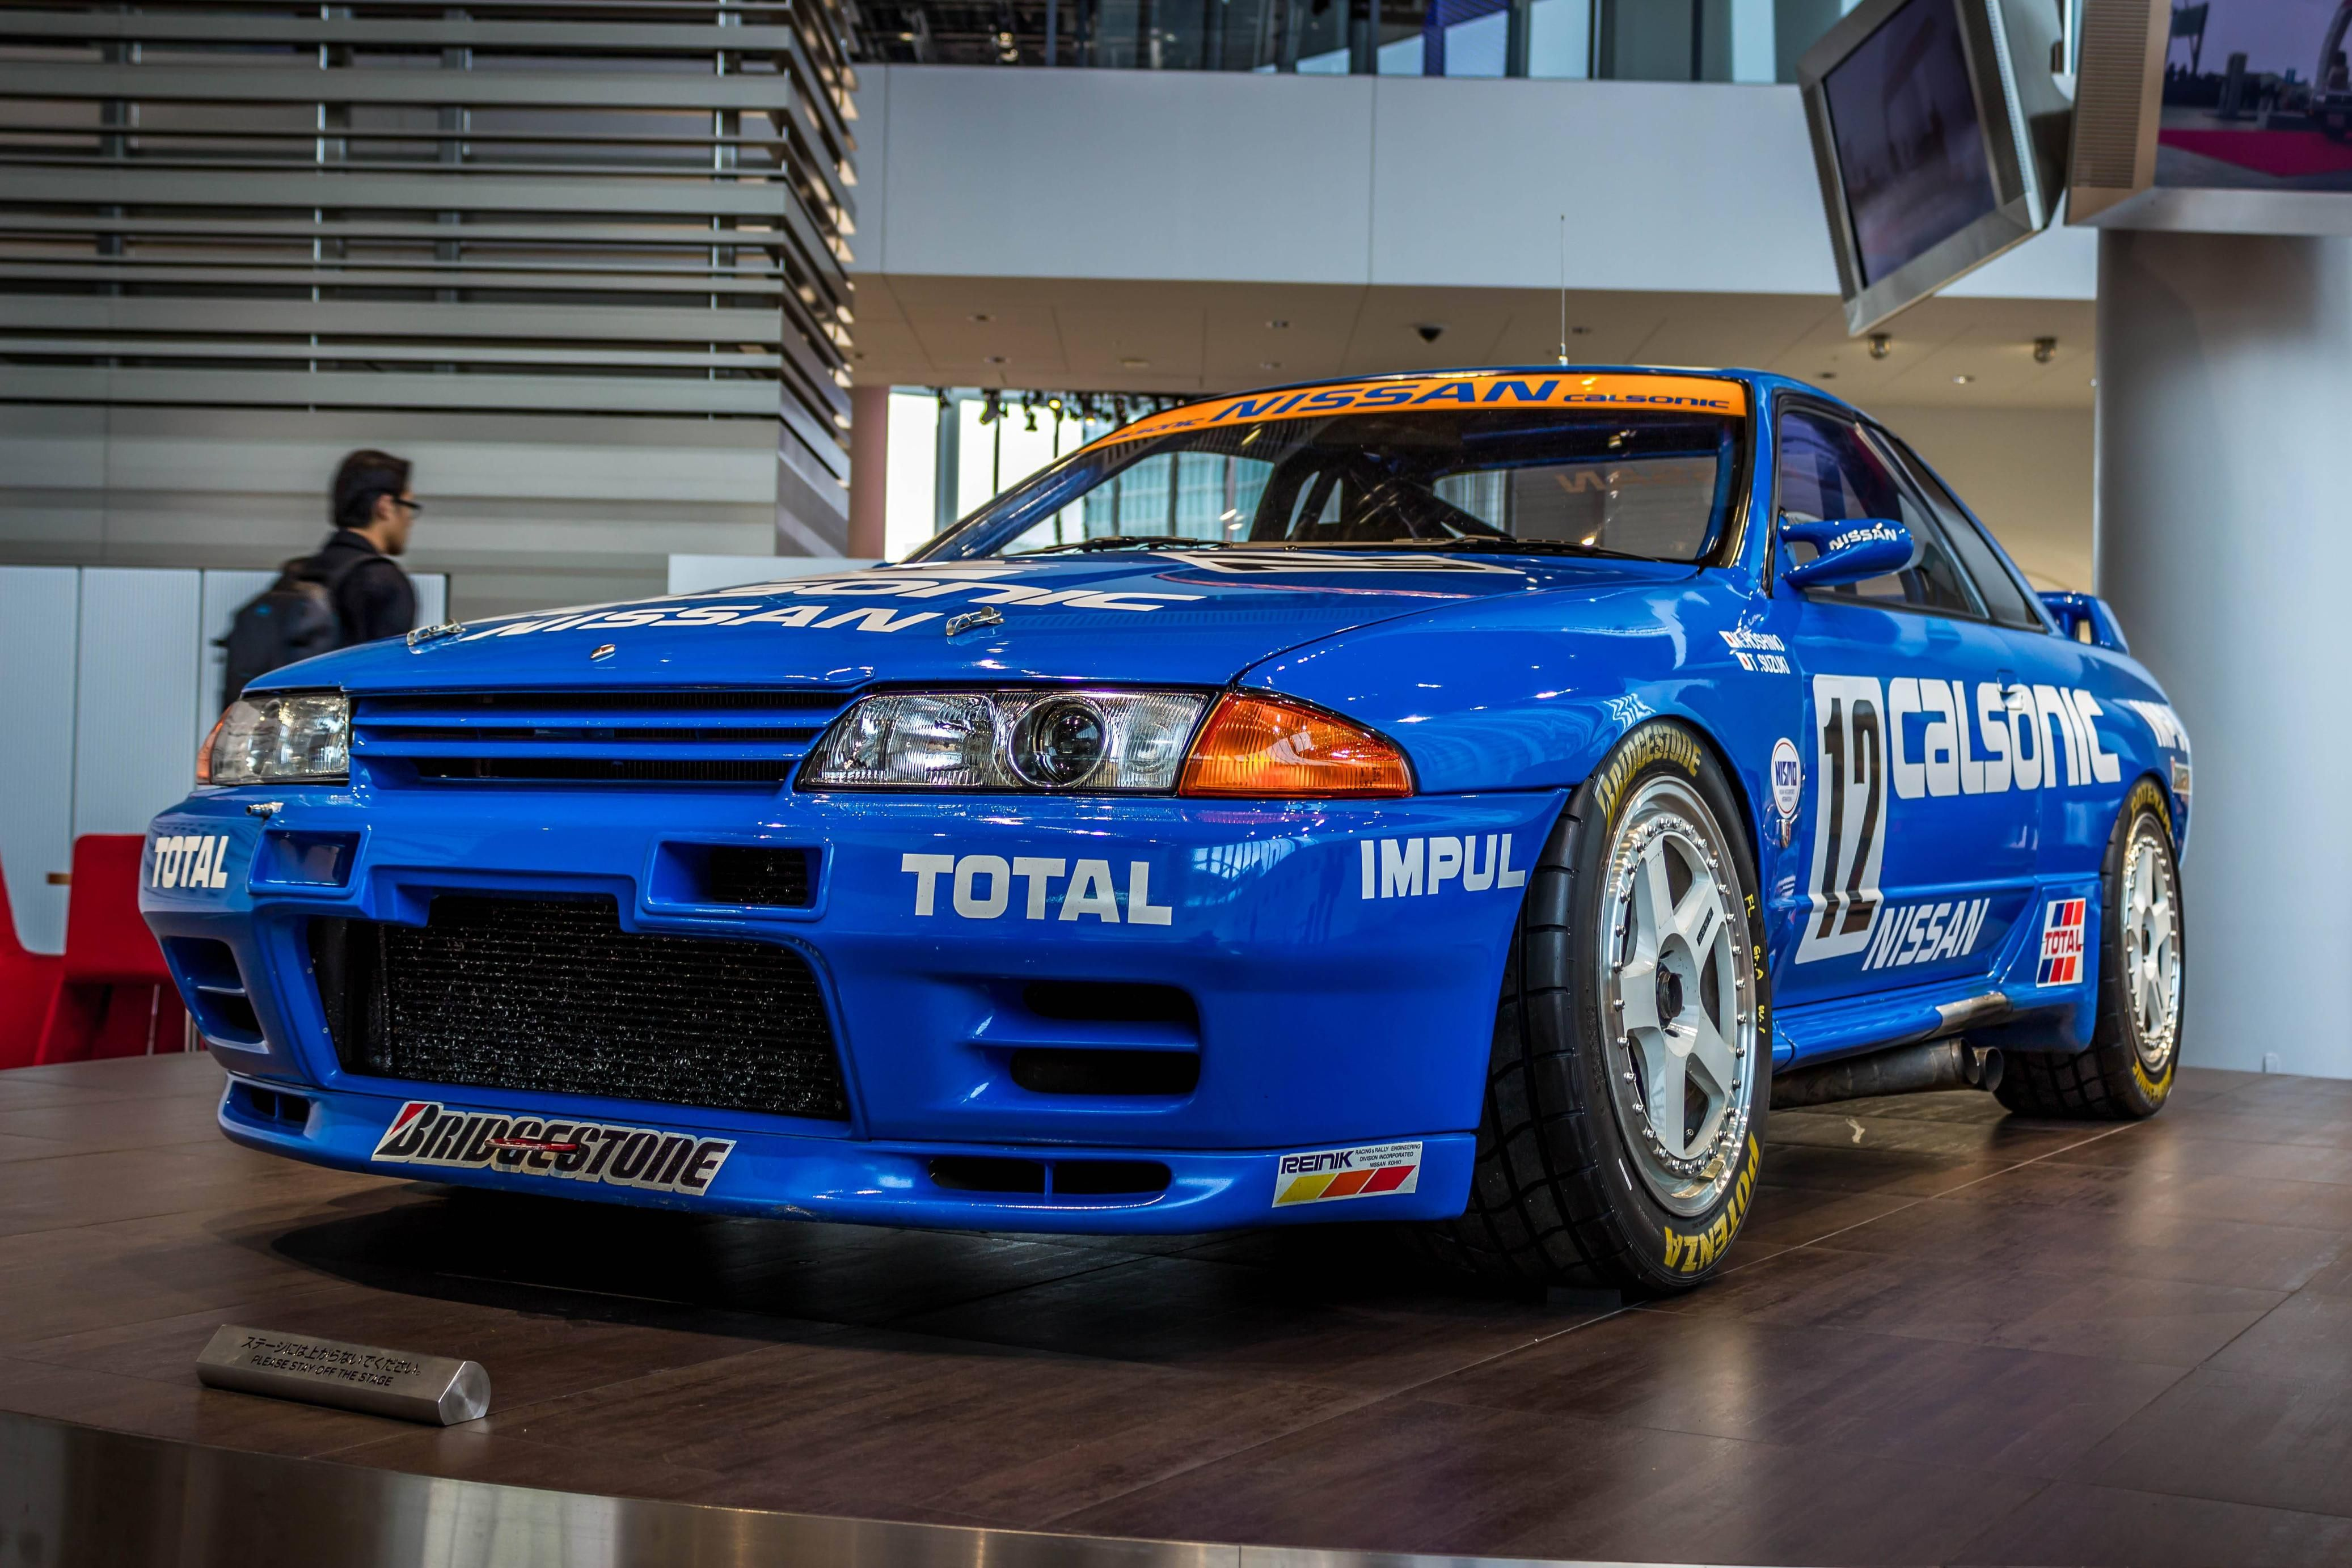 r32 gtr calsonic skylines gtrs pinterest nissan jdm and cars. Black Bedroom Furniture Sets. Home Design Ideas